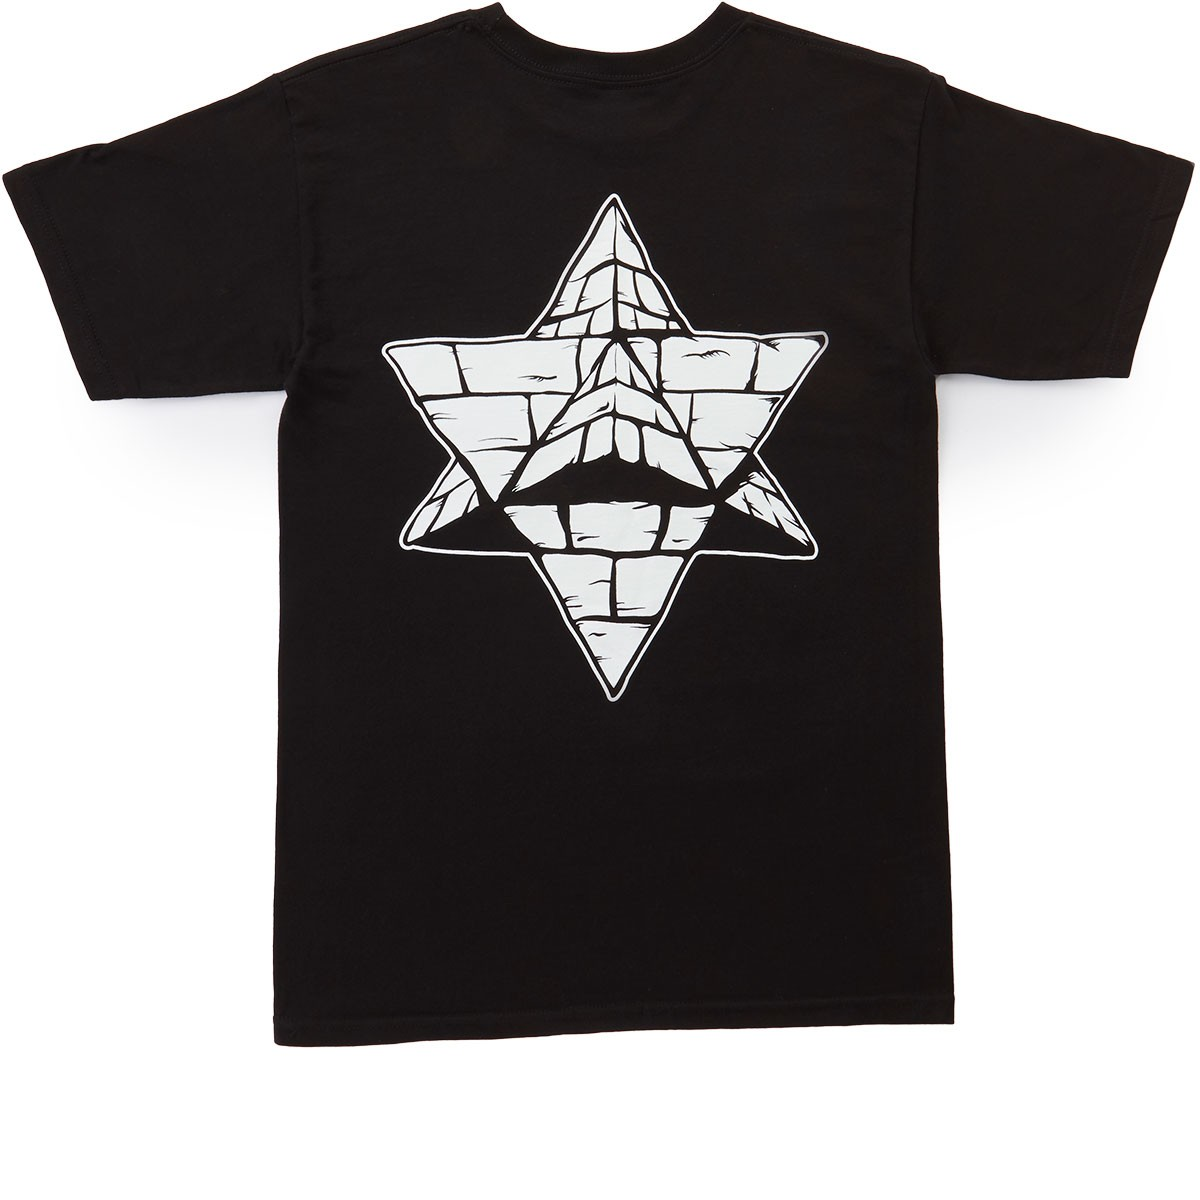 Pyramid country distant mind terrain t shirt black for Black pyramid t shirts for sale